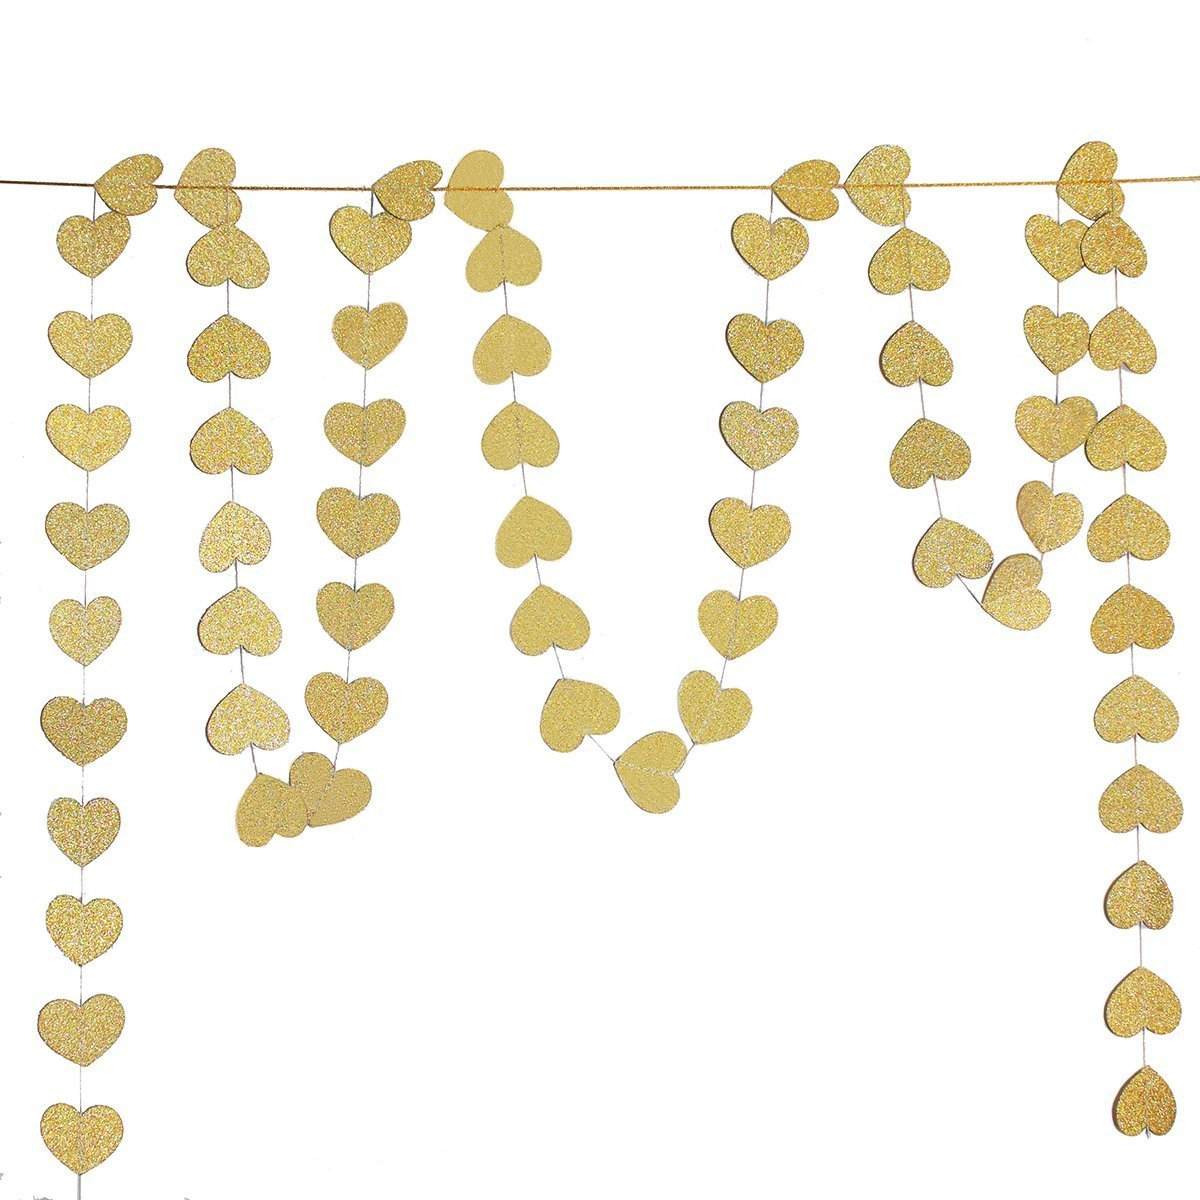 Koker Glitter Paper Heart Garland Banner, Heart-shaped Hanging String Decoration for Weddings or Party Backdrop, Baby Shower, Glitter Gold, 13 Feet/4 m